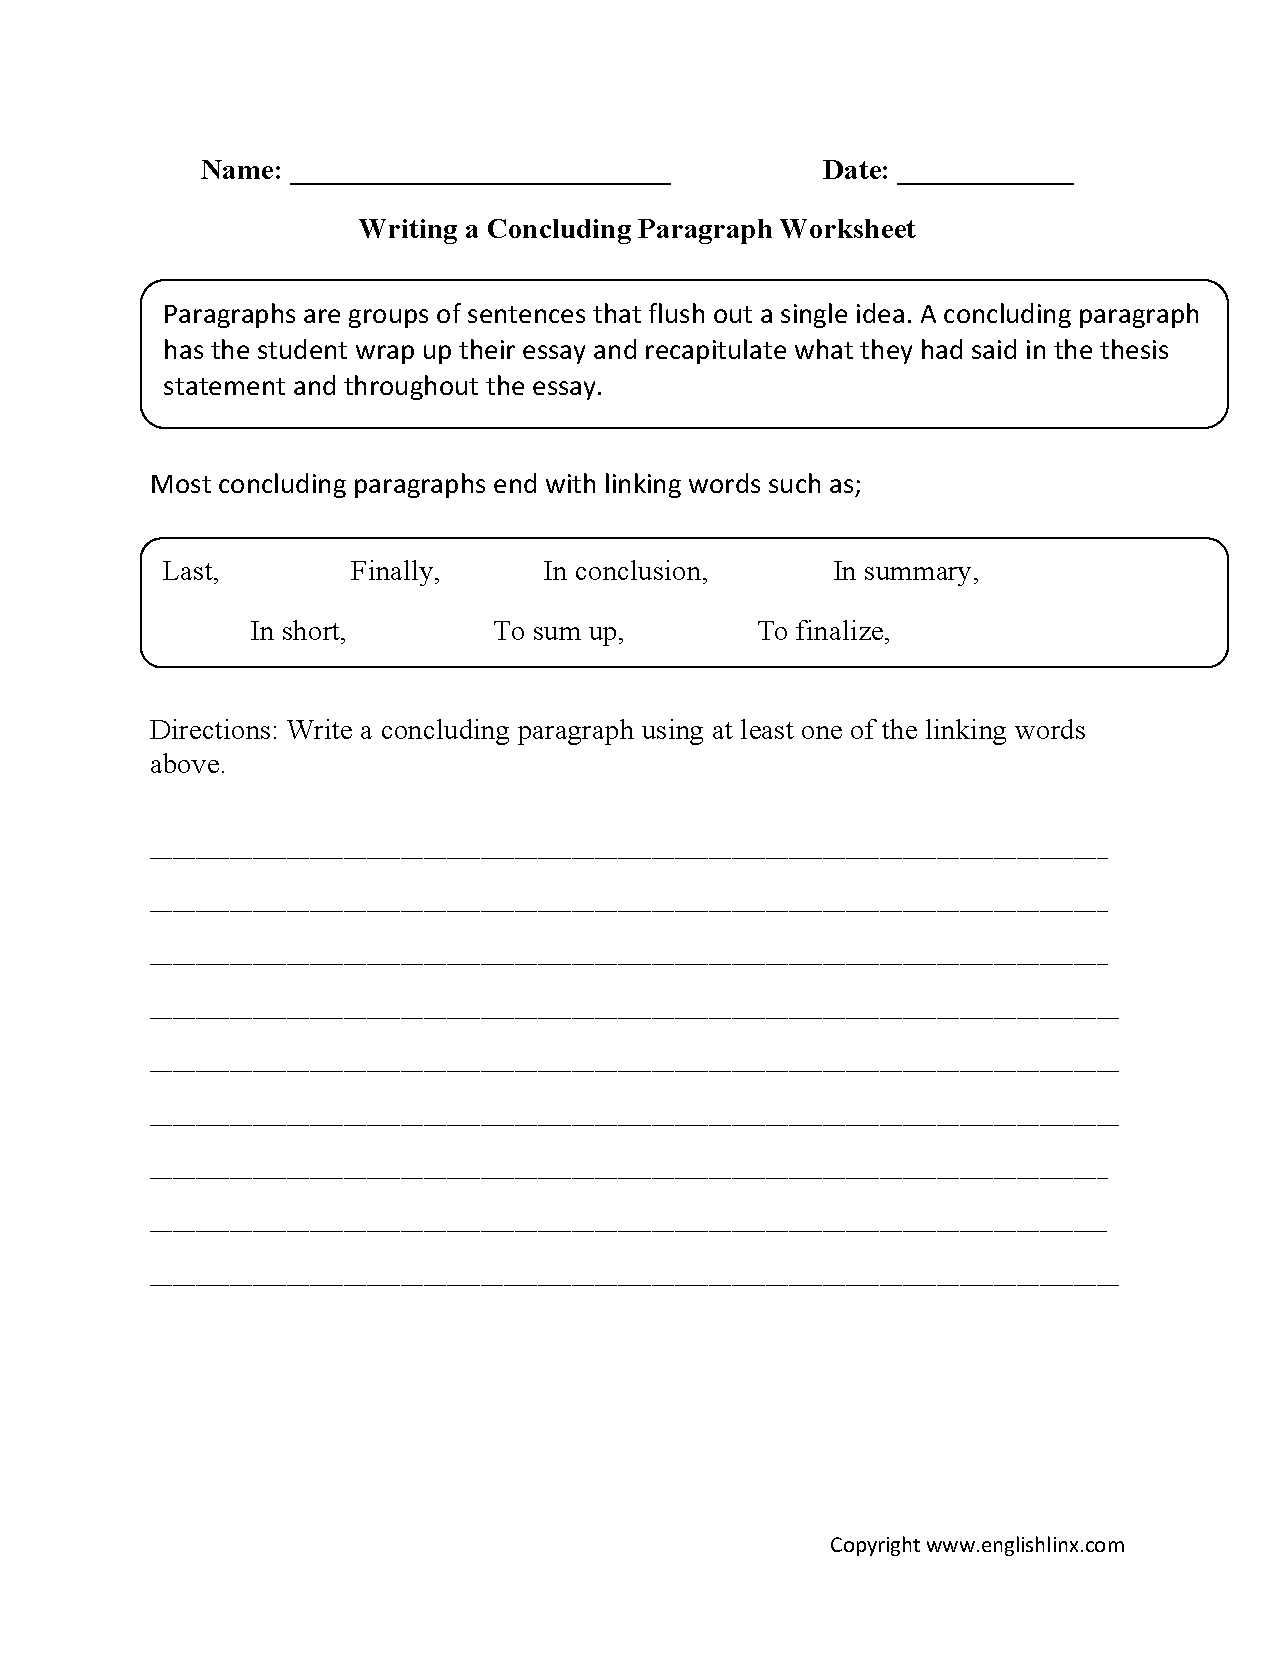 Worksheets How To Write A Paragraph Worksheets writing worksheets paragraph concluding worksheets